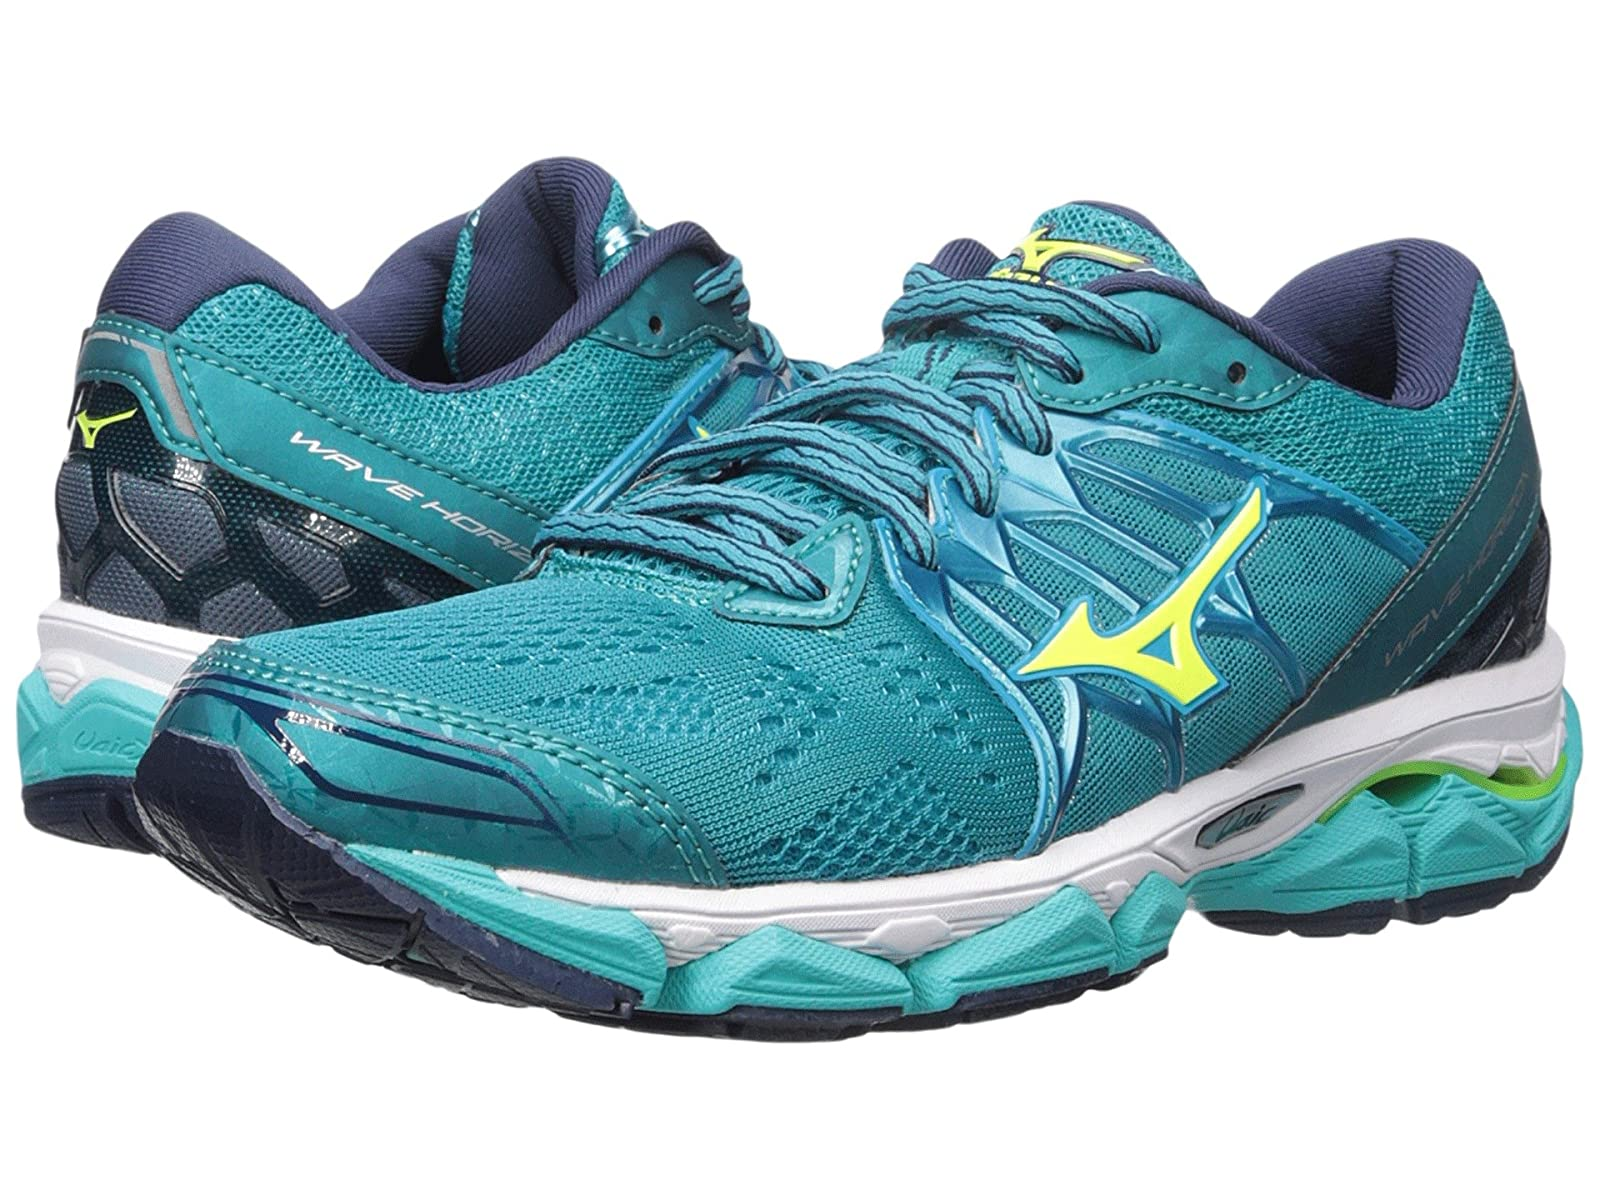 Mizuno Wave HorizonCheap and distinctive eye-catching shoes